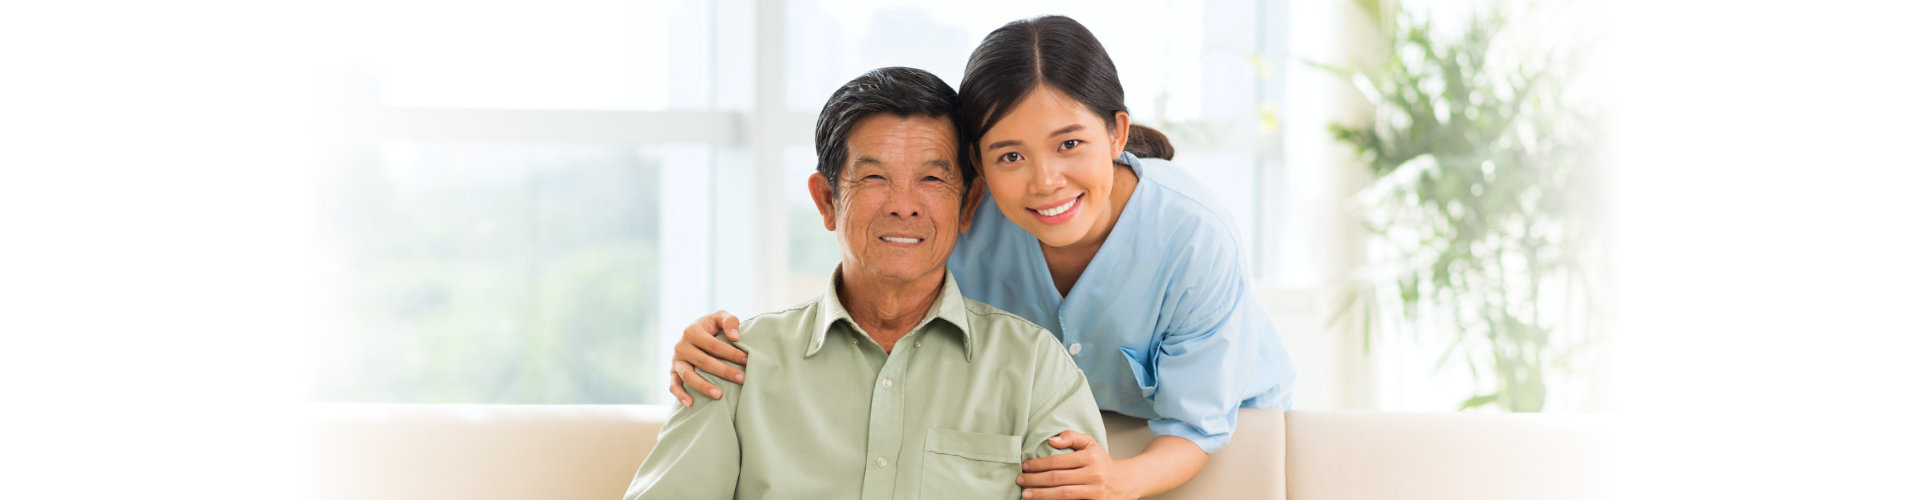 lady caregiver with senior man smiling